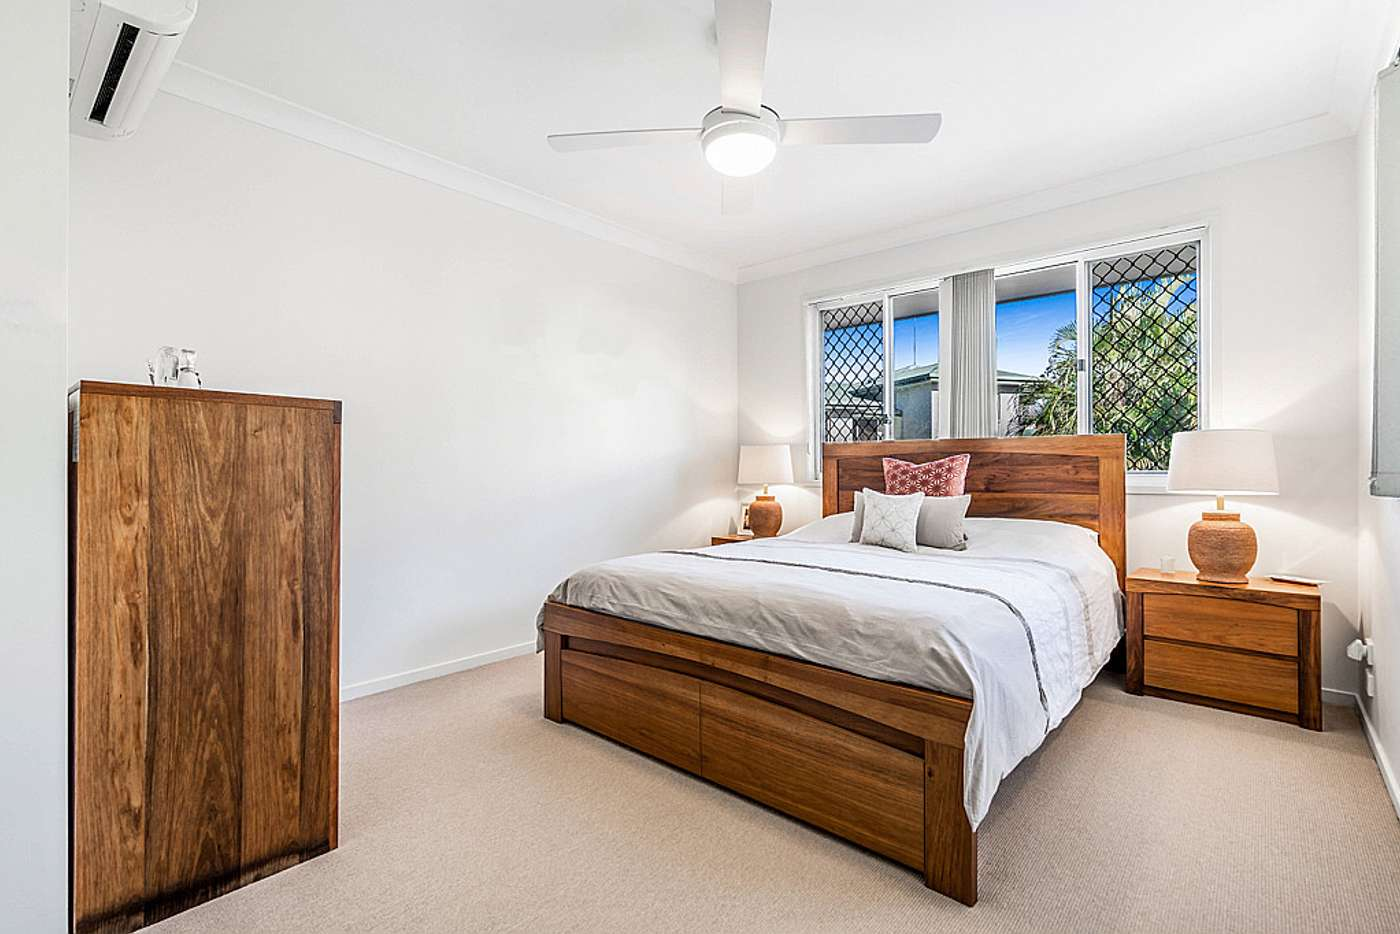 Sixth view of Homely townhouse listing, 9/16 Hill Crescent, Carina Heights QLD 4152